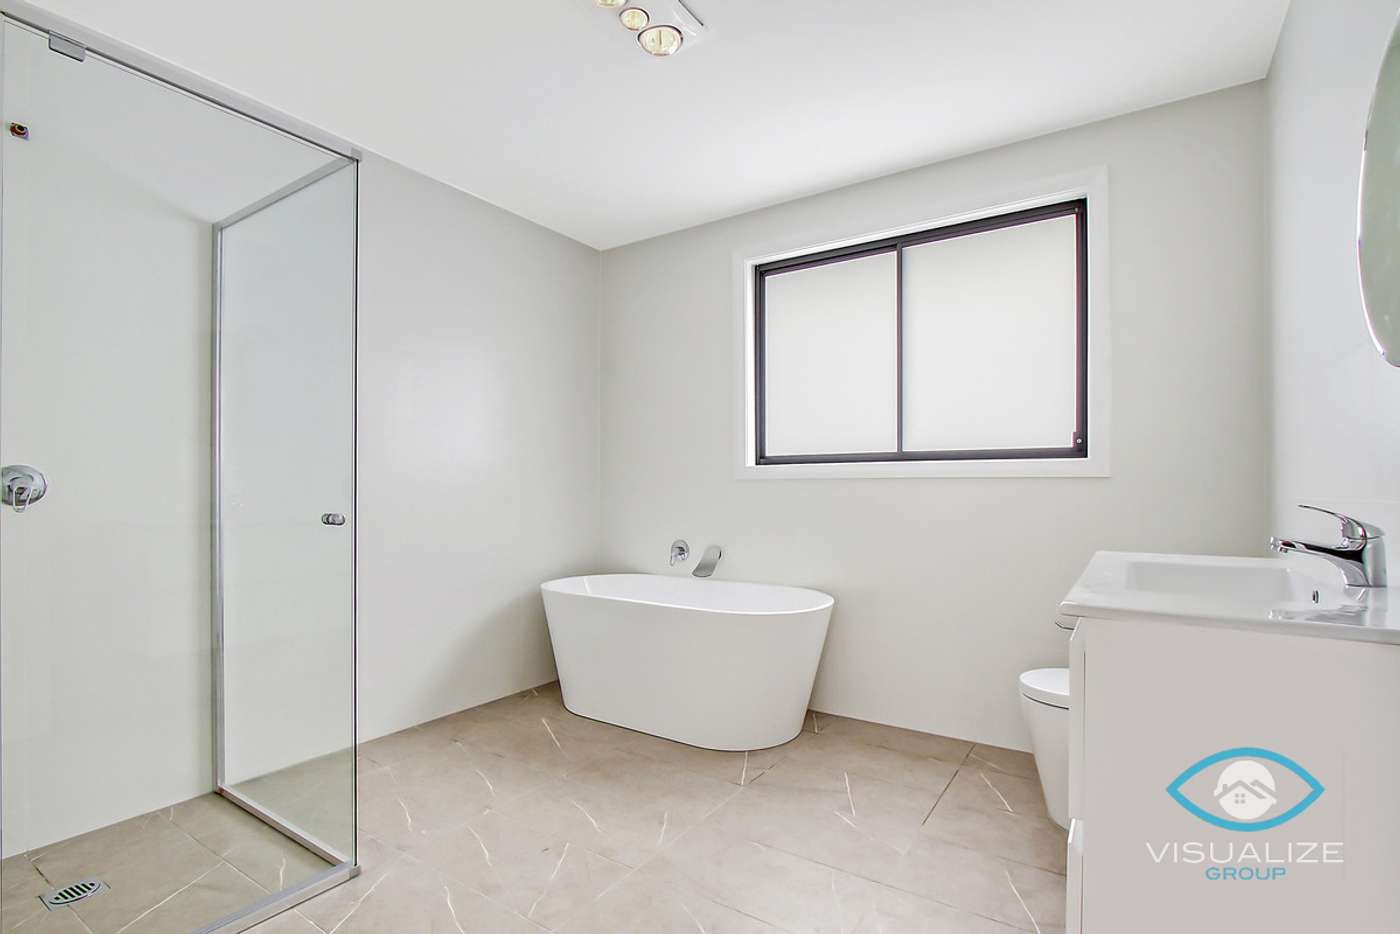 Sixth view of Homely house listing, 1 Anitra Place, Shalvey NSW 2770